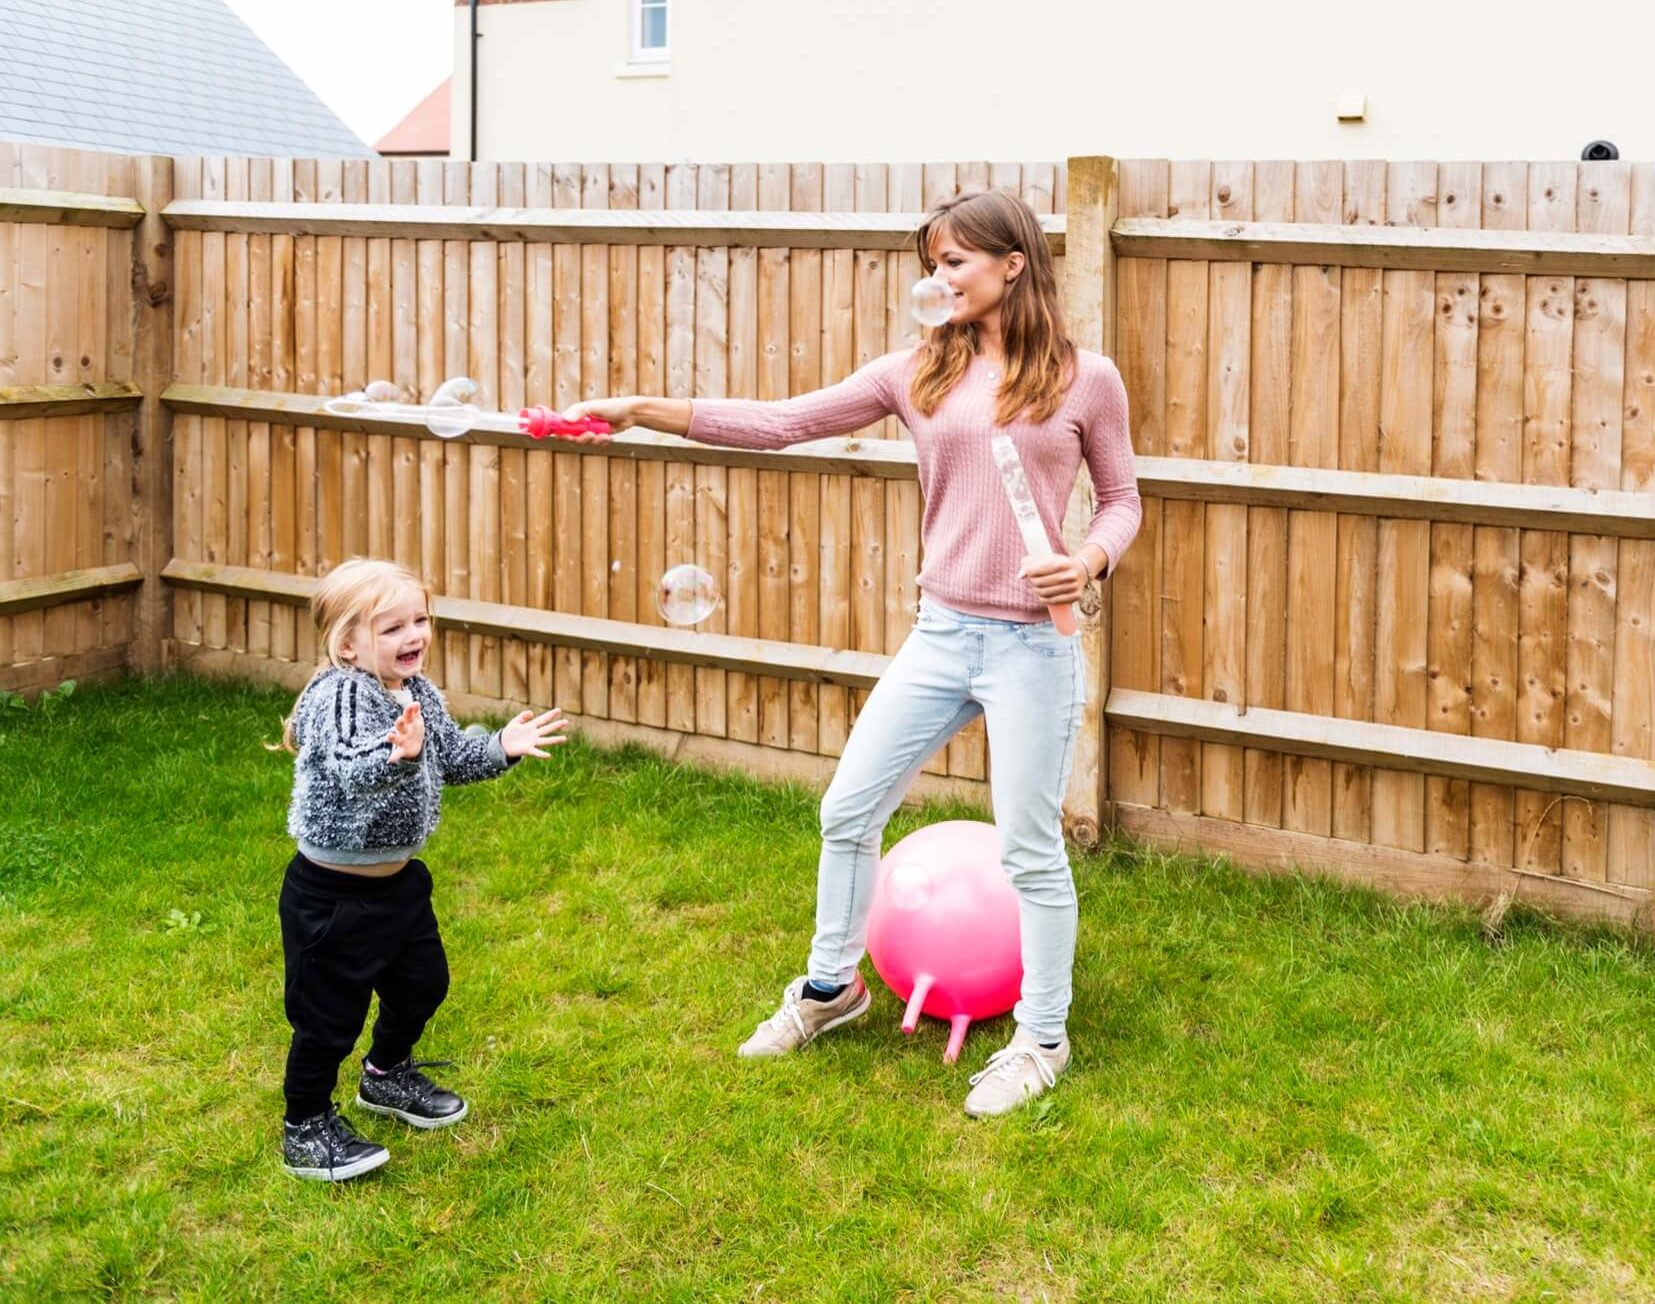 Parent and child playing in fenced yard